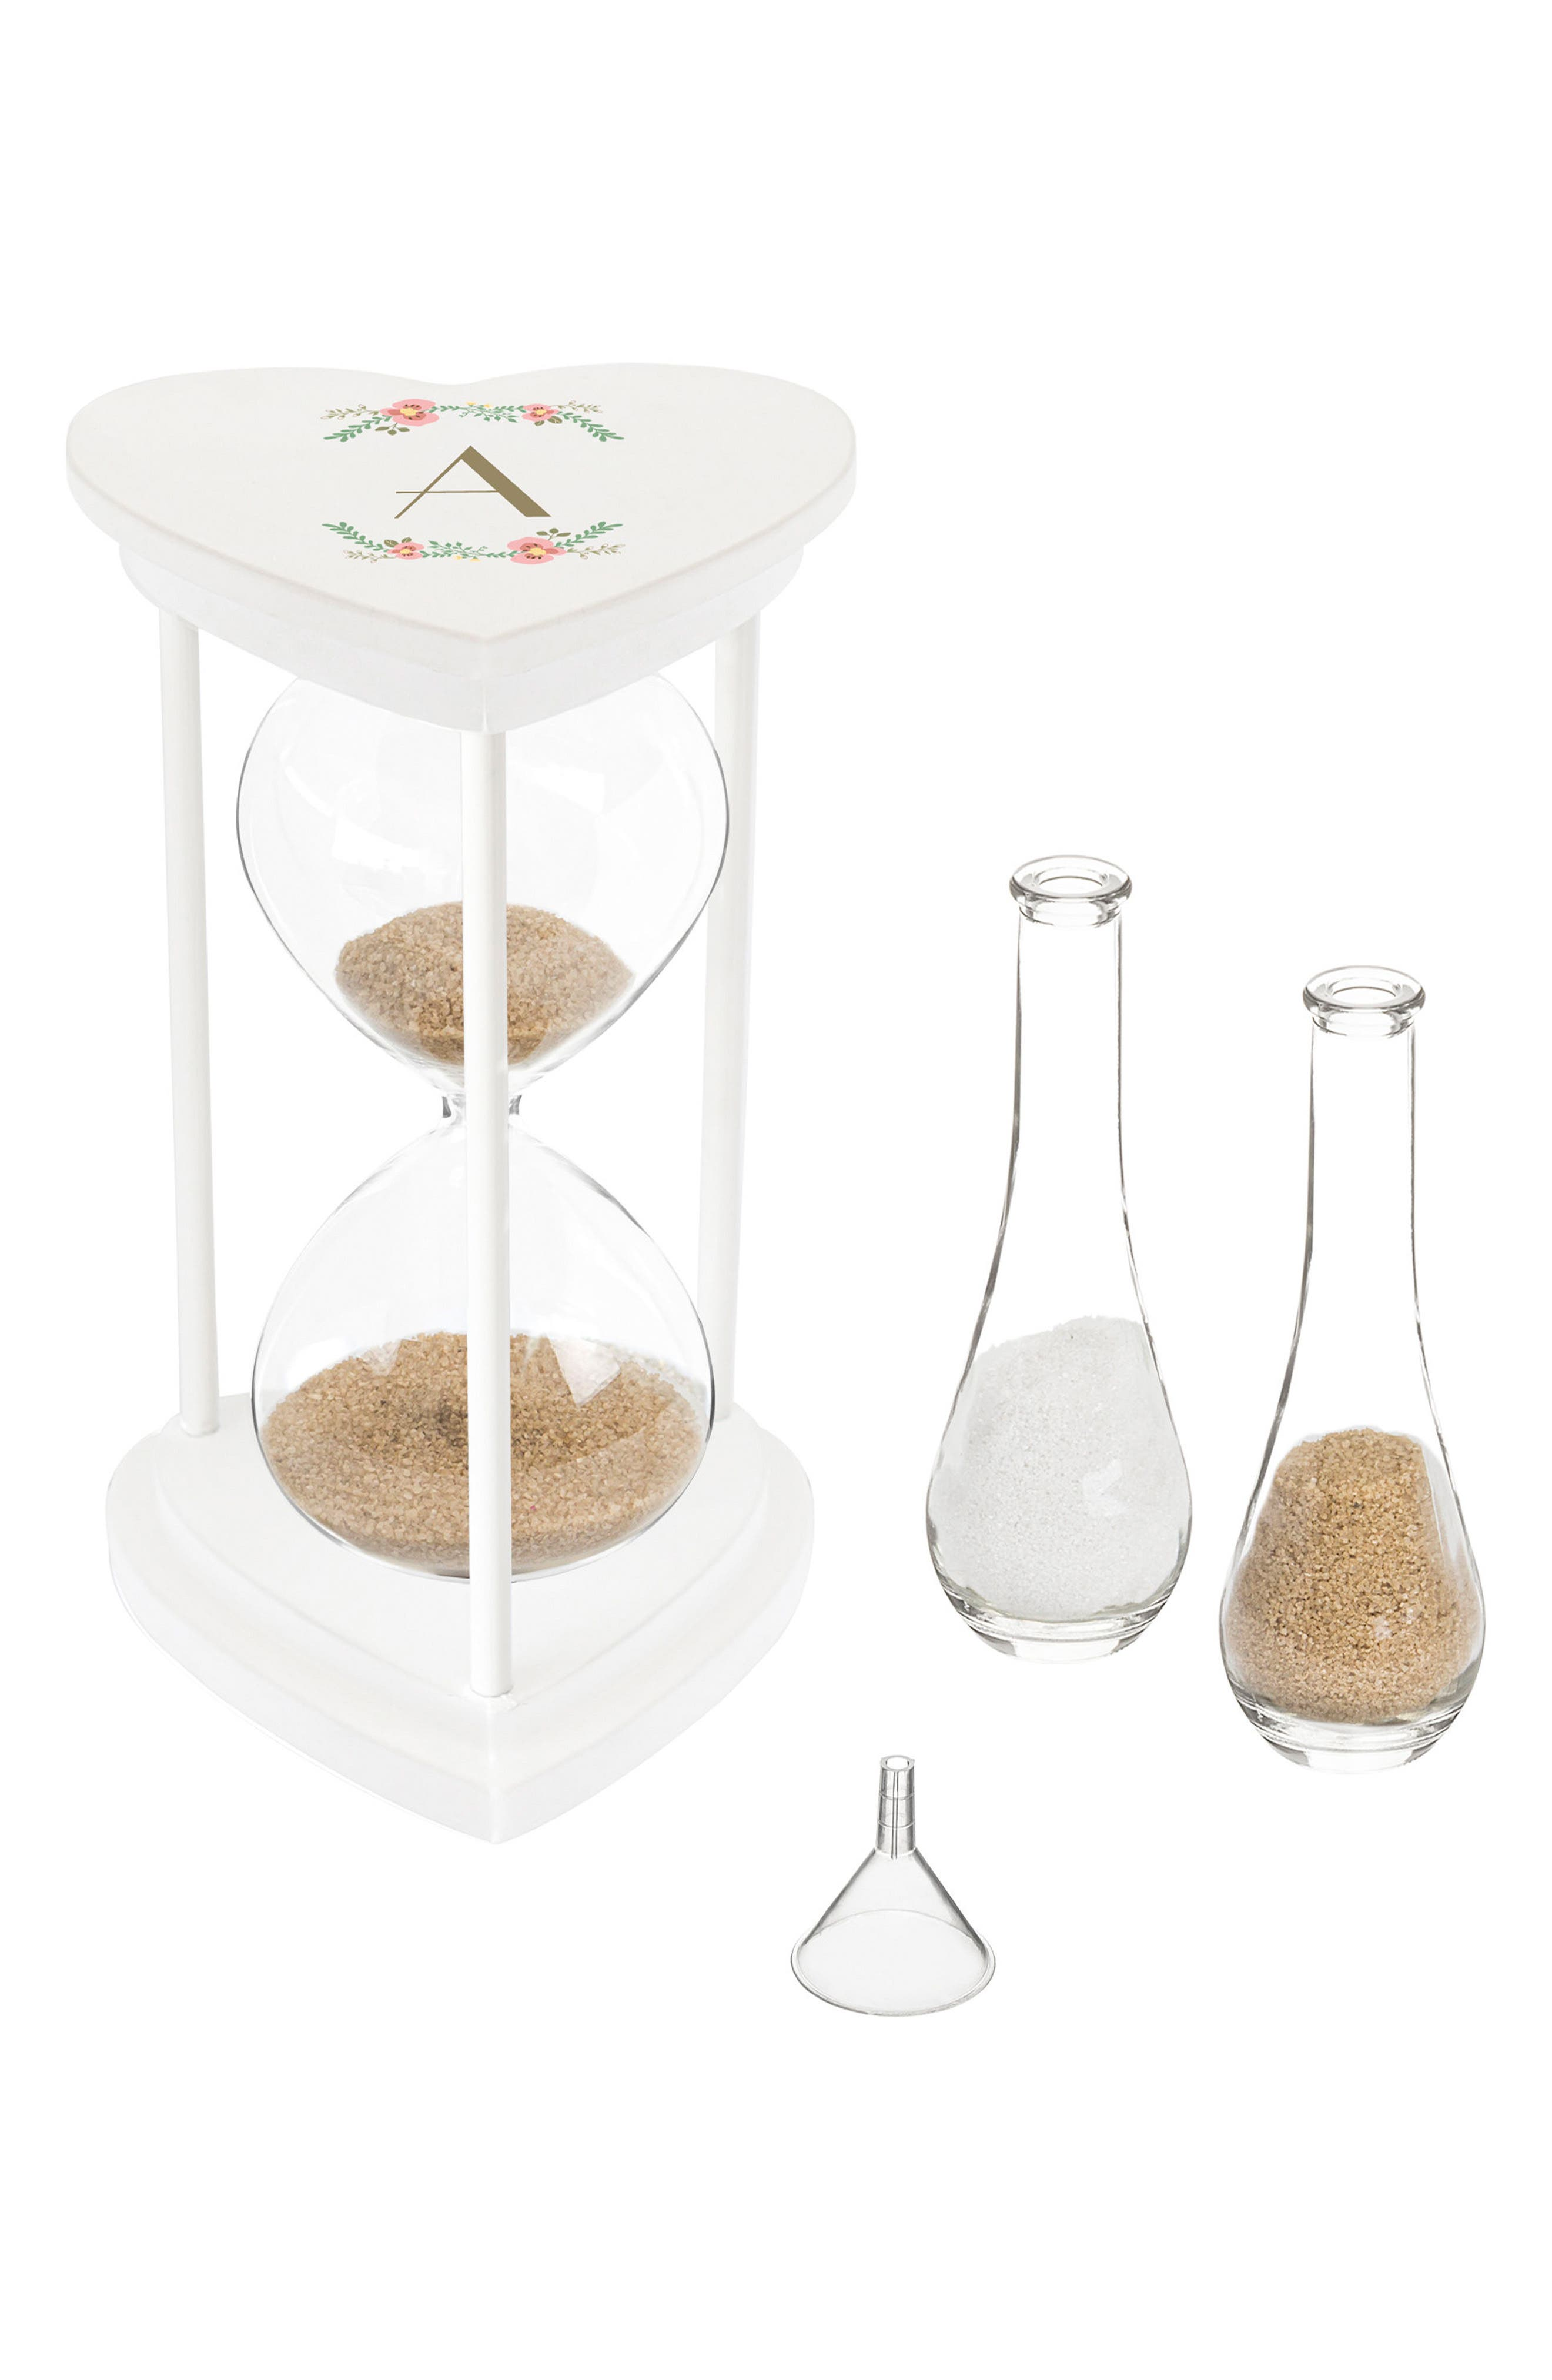 CATHY'S CONCEPTS, Monogram Unity Sand Ceremony Hourglass Set, Main thumbnail 1, color, WHITE - A